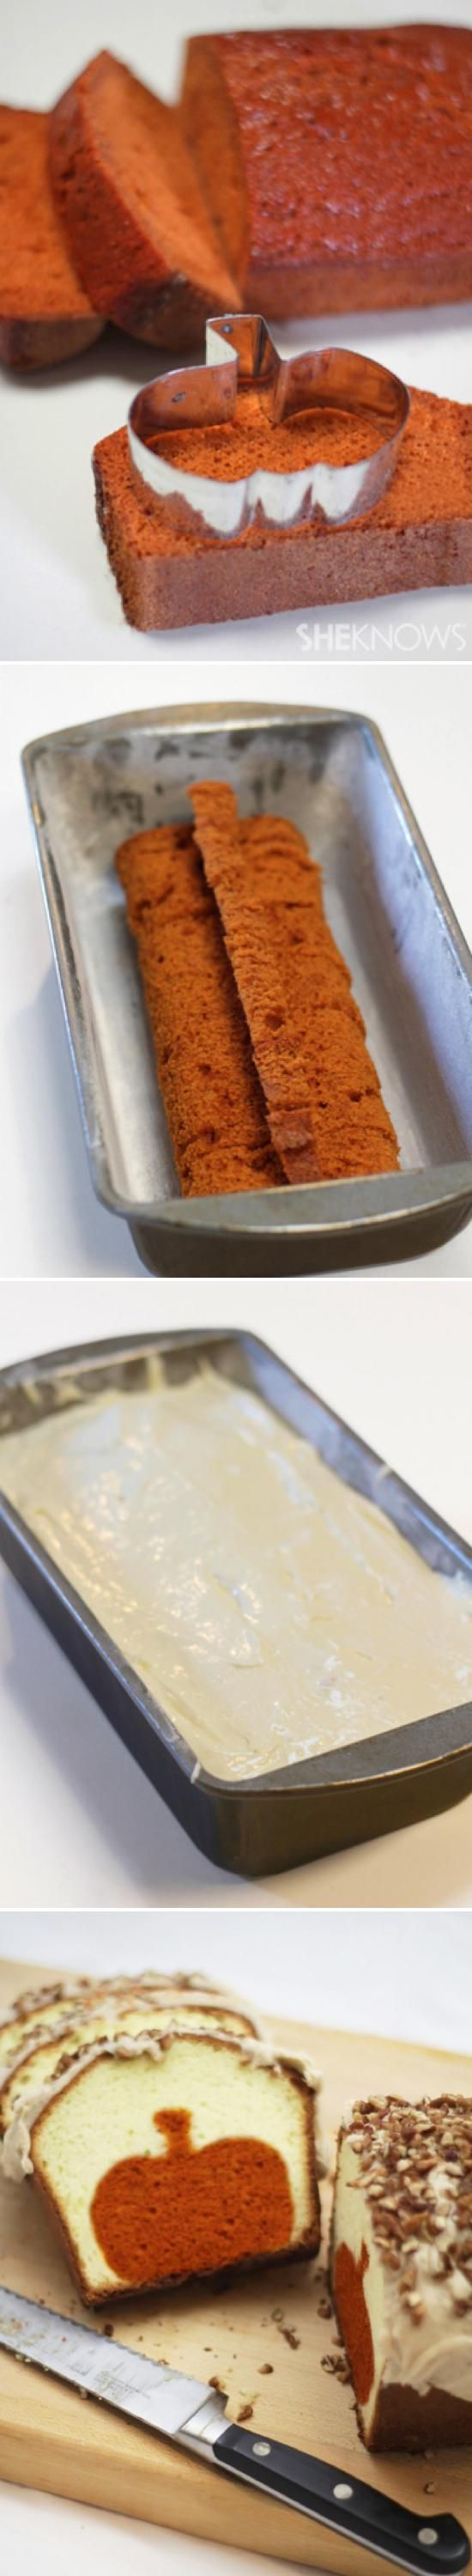 Peekaboo pumpkin pound cake ~ Use a Christmas Tree, flower, or star cookie cutter for other fun designs!